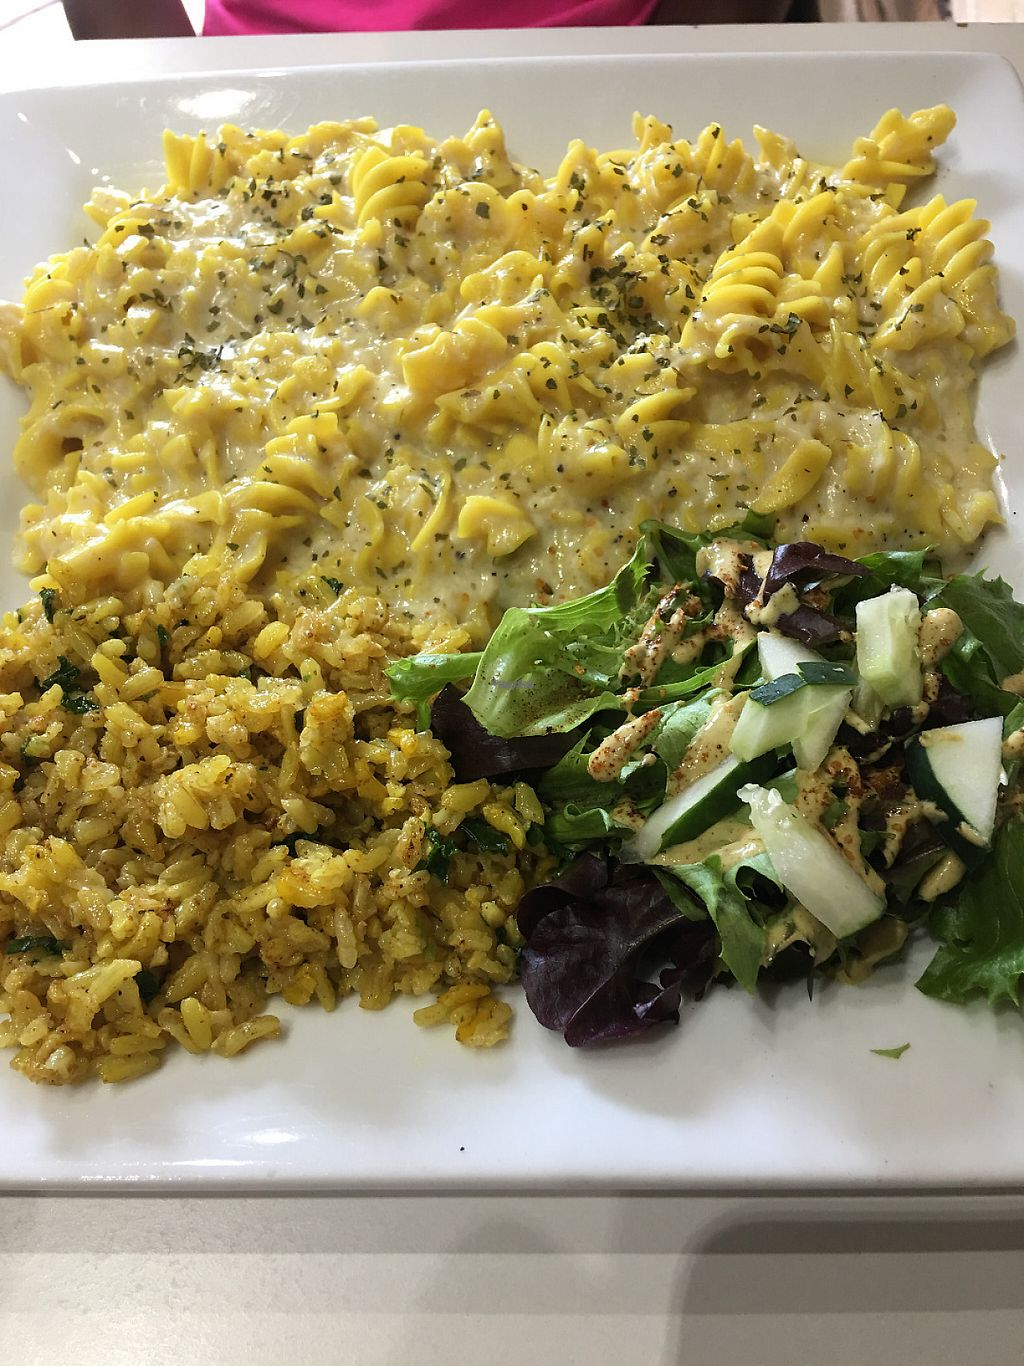 """Photo of The New Vegan  by <a href=""""/members/profile/myra975"""">myra975</a> <br/>The New Vegan <br/> March 19, 2017  - <a href='/contact/abuse/image/46238/238541'>Report</a>"""